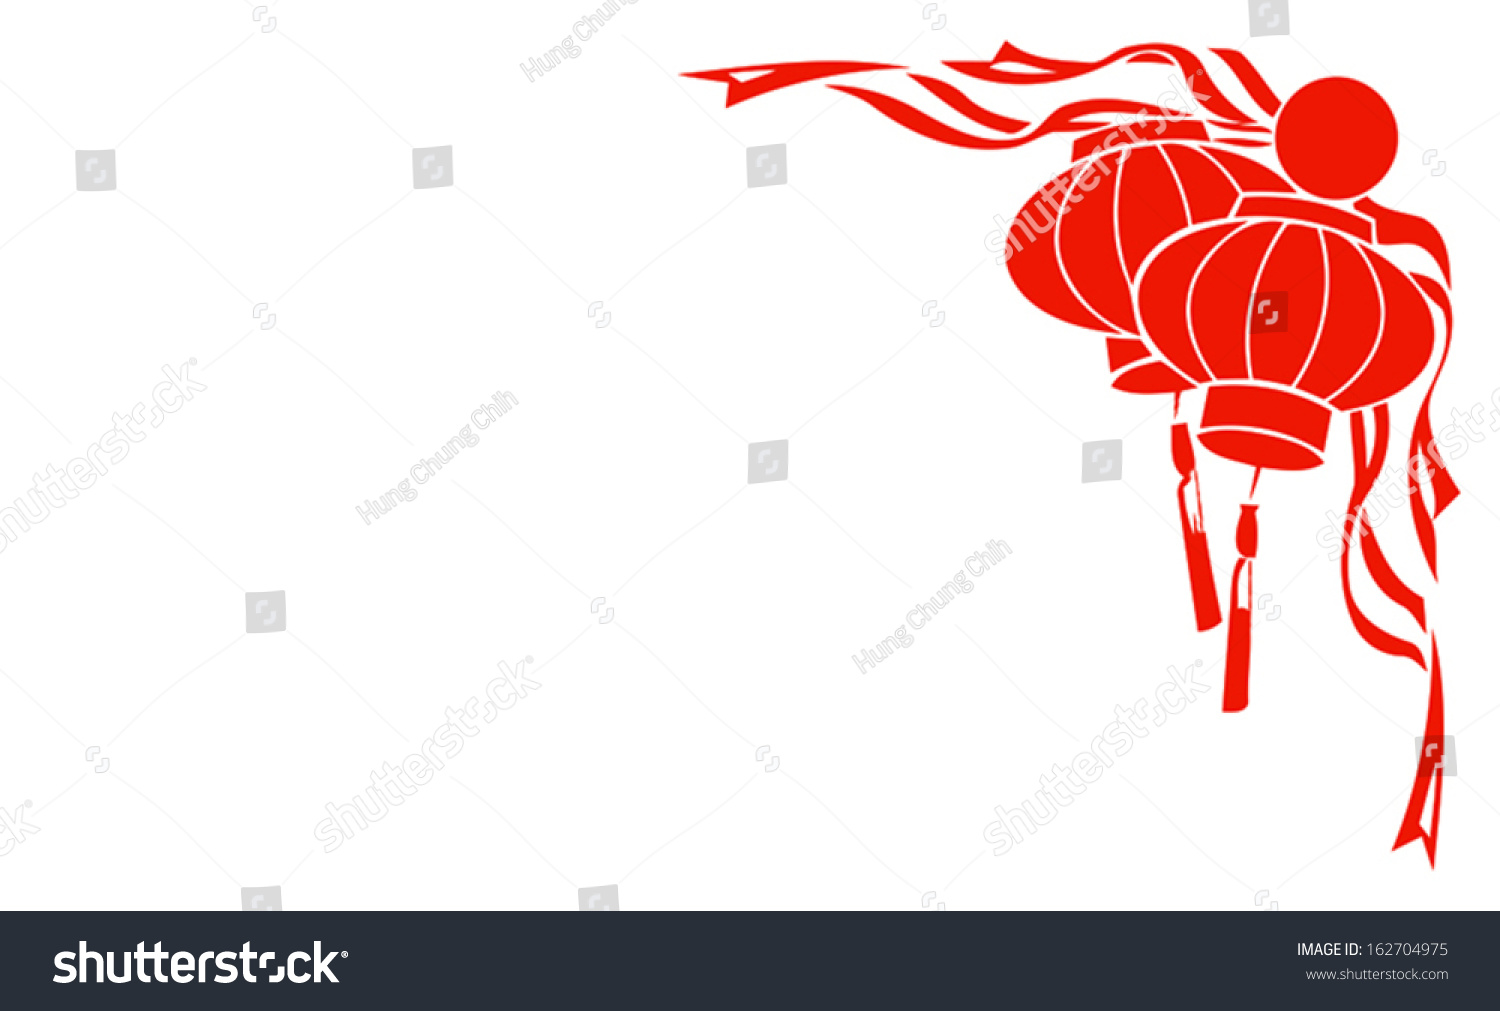 chinese red lantern illustration for chinese new year frame border